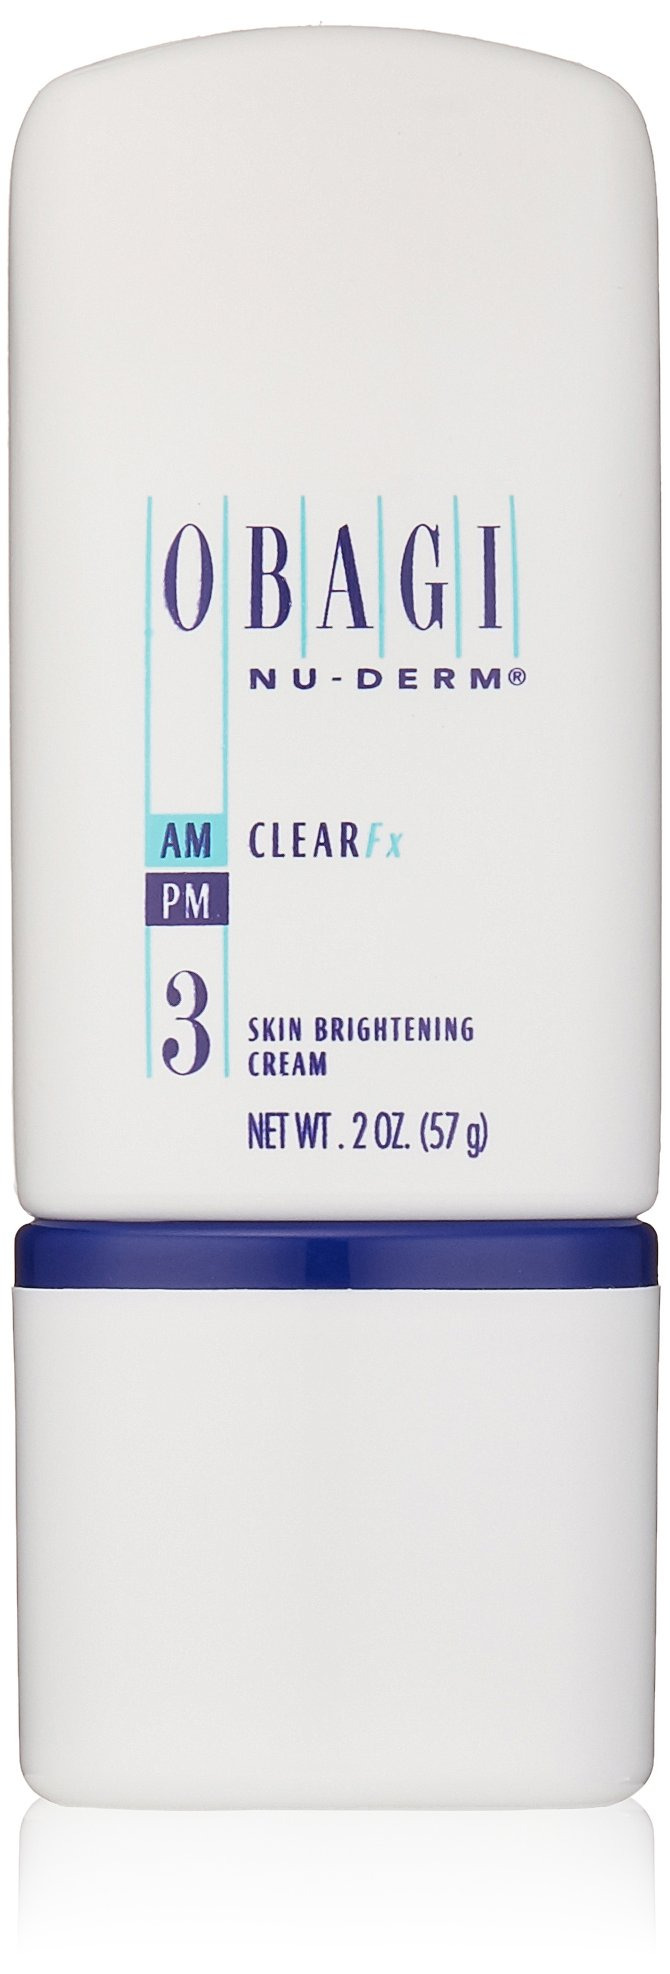 Obagi Nu-Derm Clear Fx, 2 oz by Obagi Medical